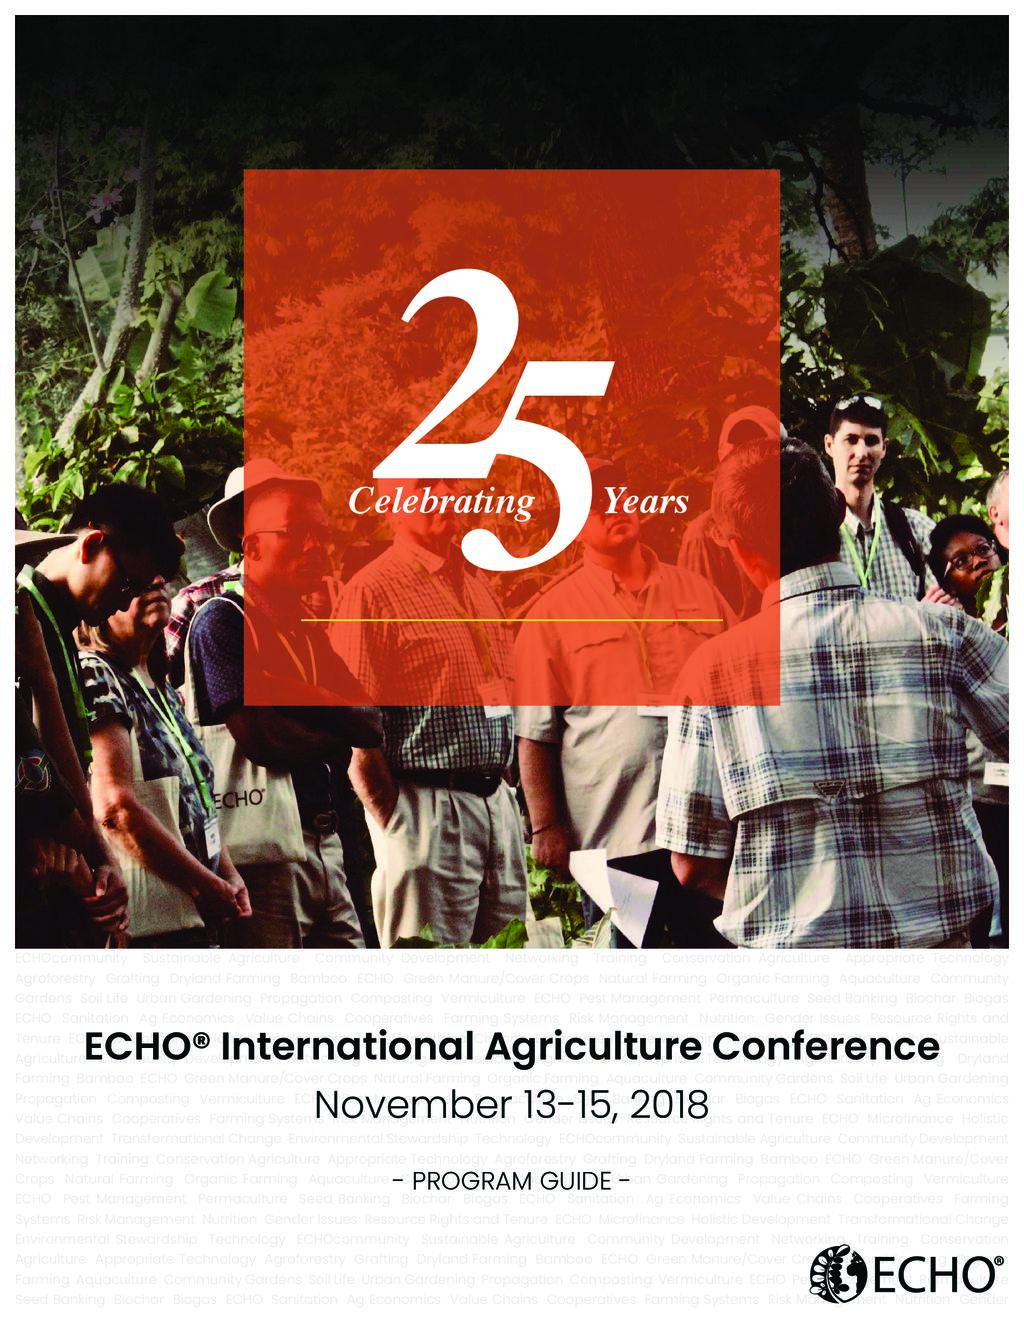 ECHO International Agriculture Conference 2018